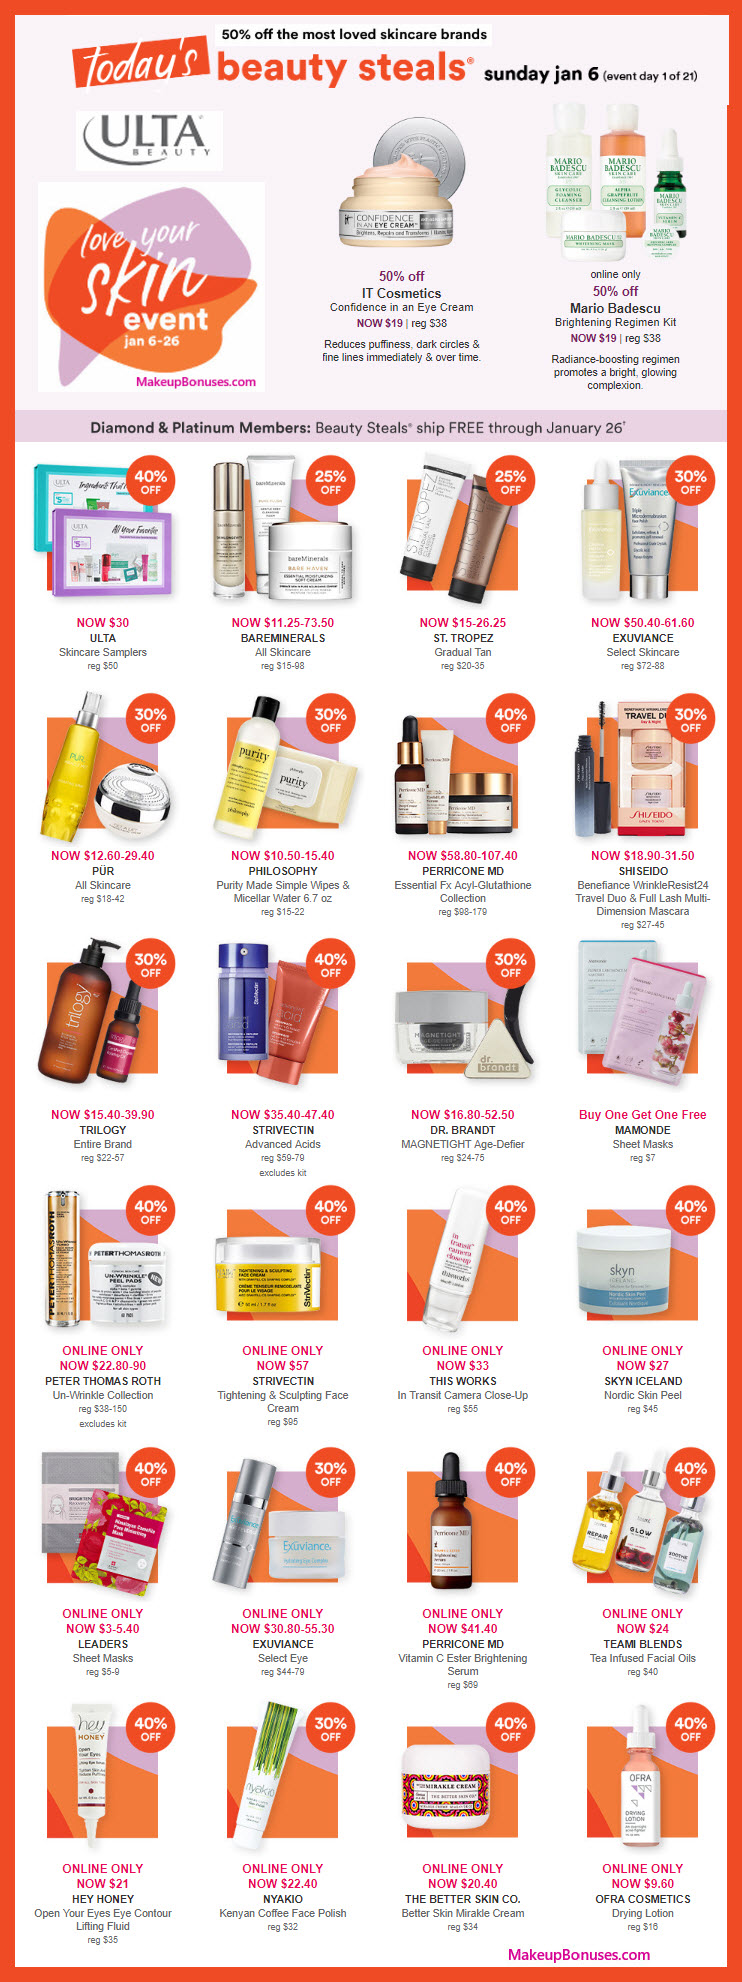 Ulta Love Your Skin Event 2019 - Up to 50% Off of Skincare! #UltaBeauty #MakeupBonuses #LoveYourSkin